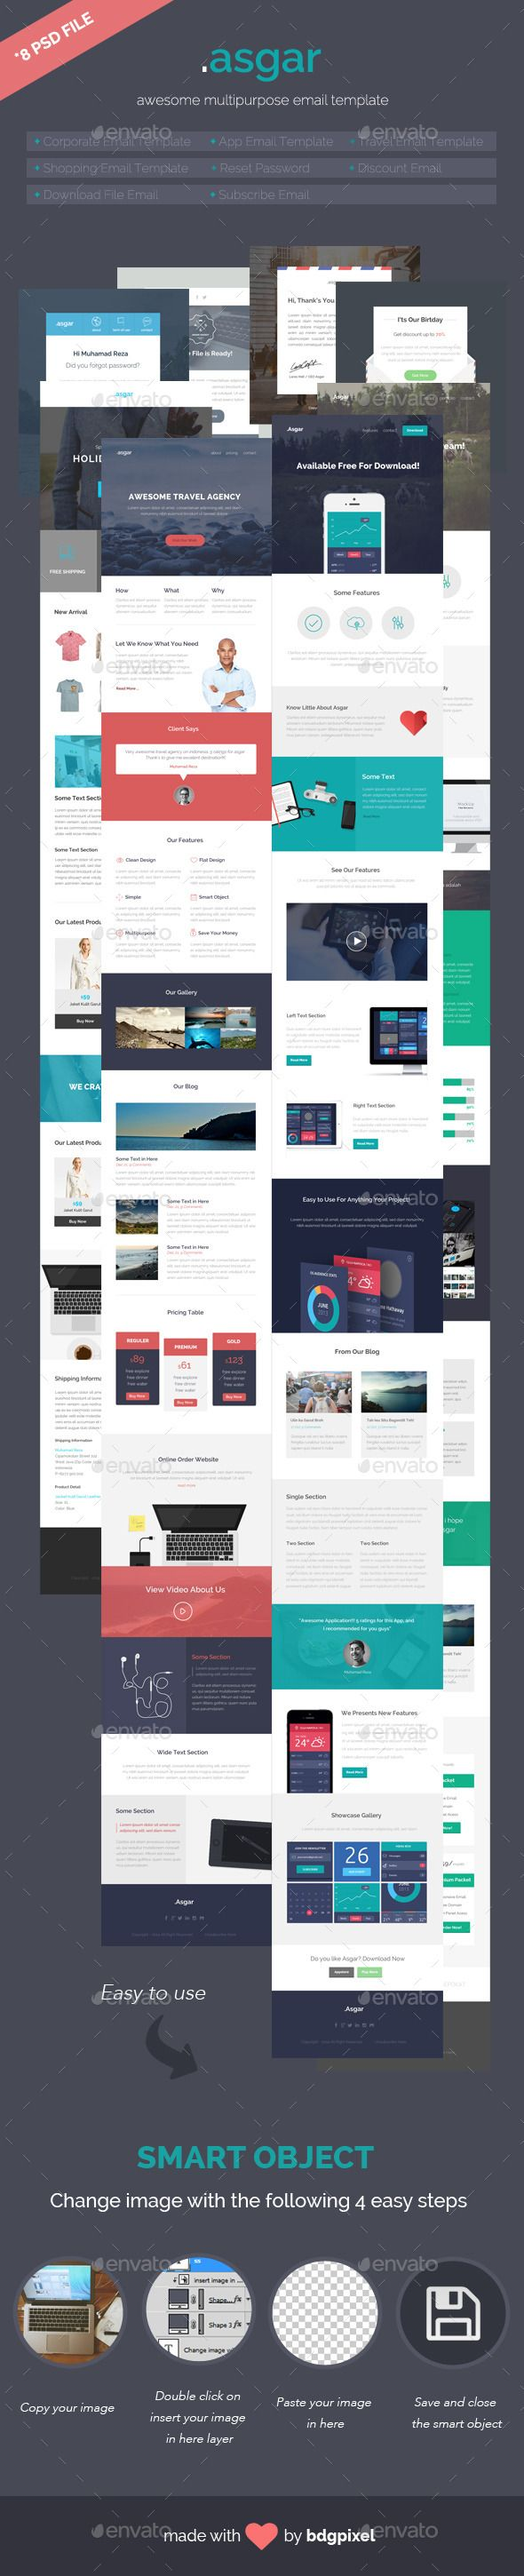 Asgar Multipurpose Email Template Template Infographic